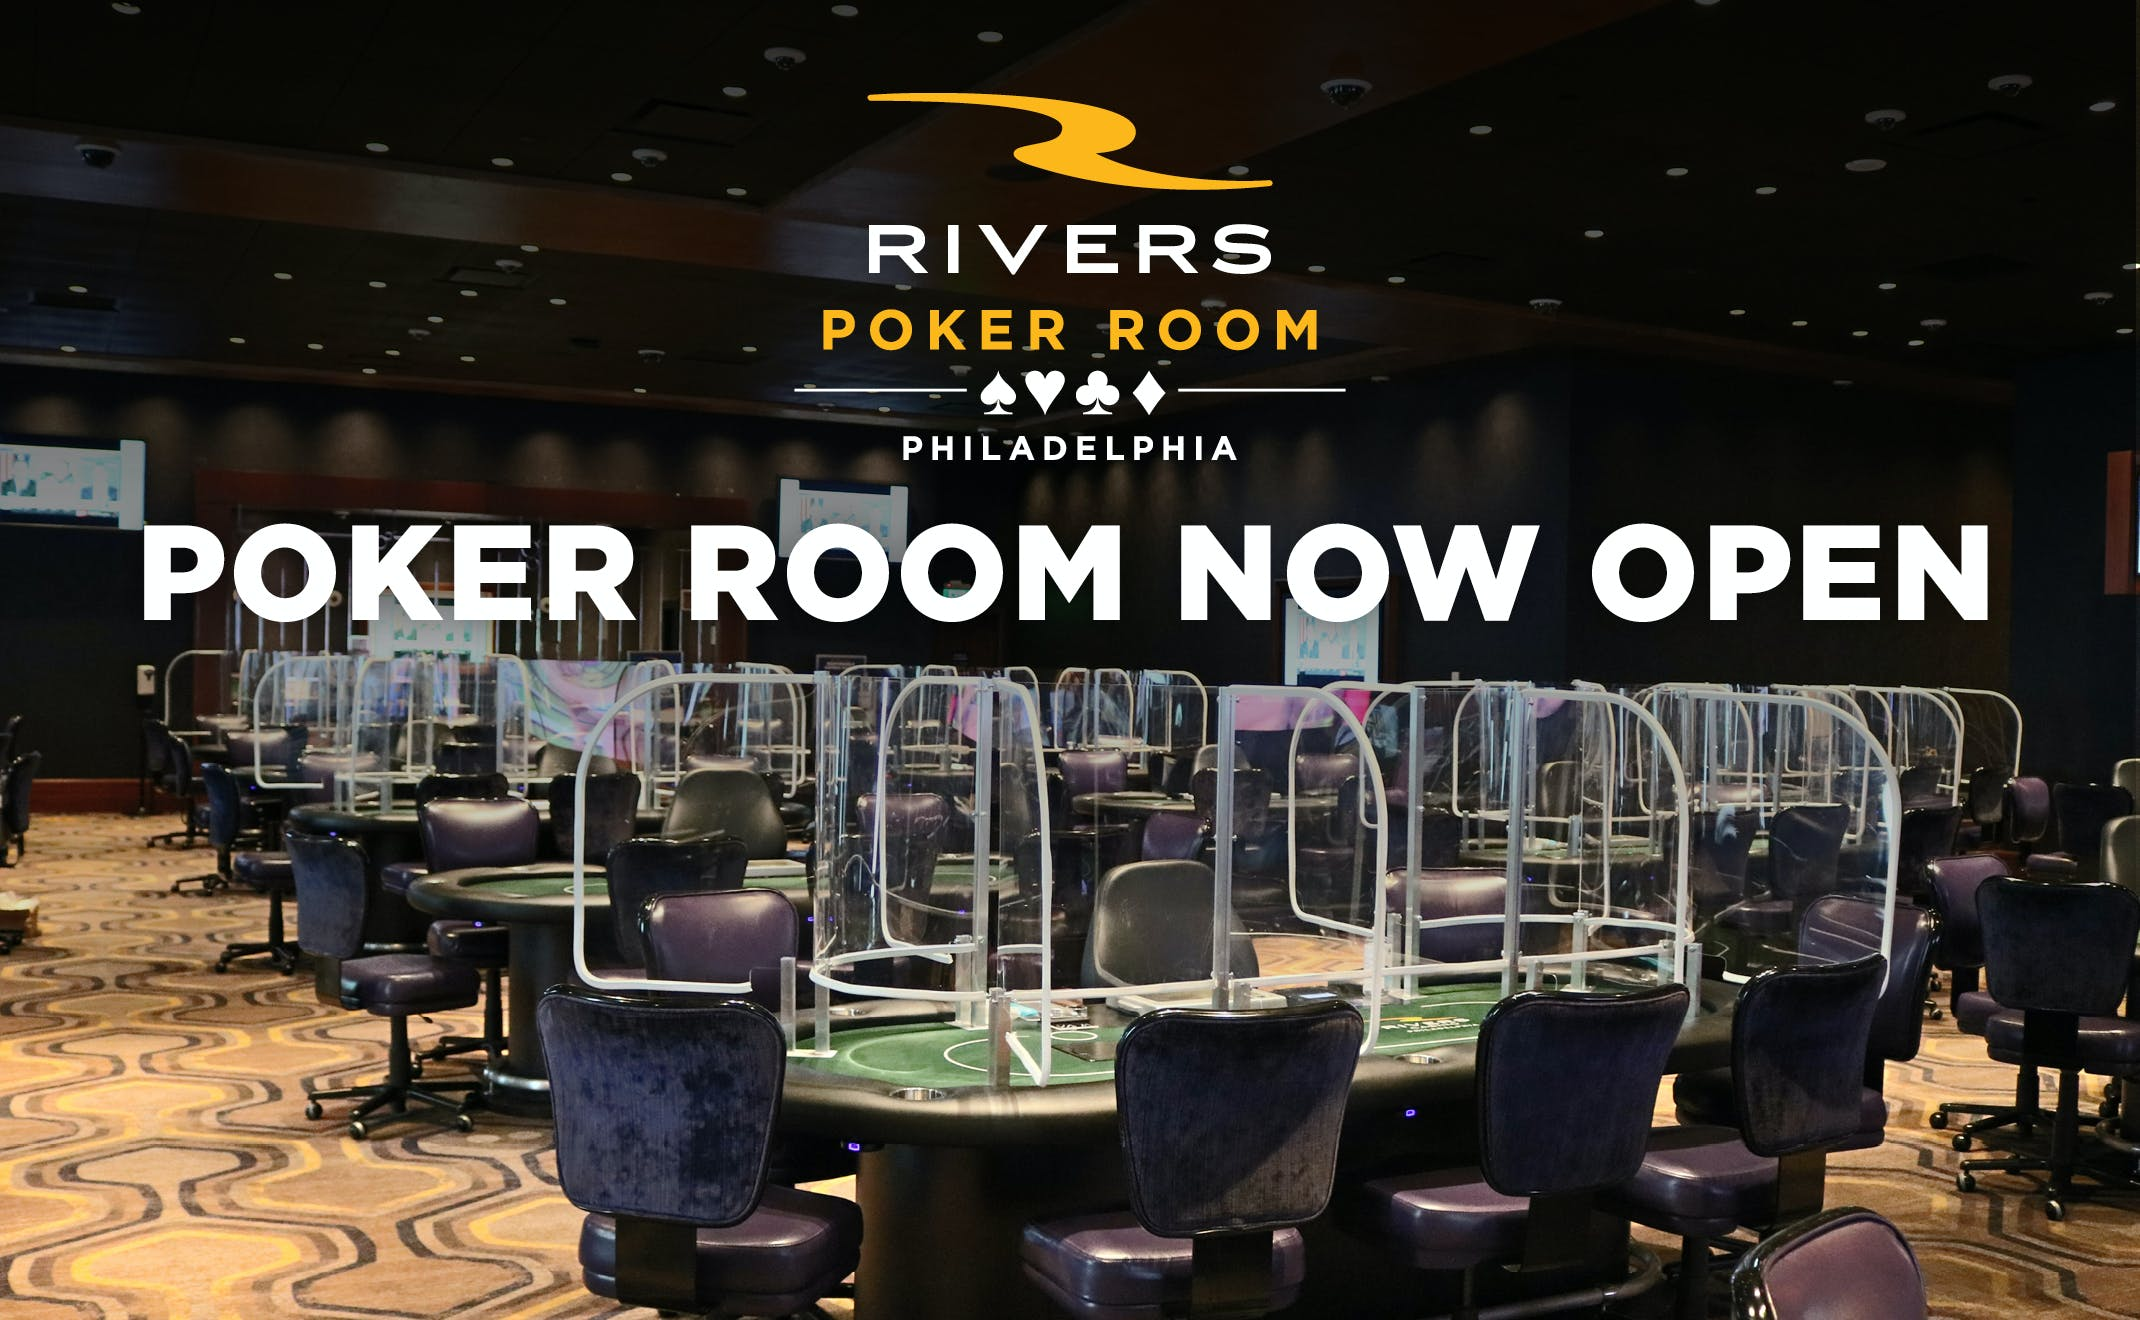 Poker Room Now Open in Philadelphia during Covid 19